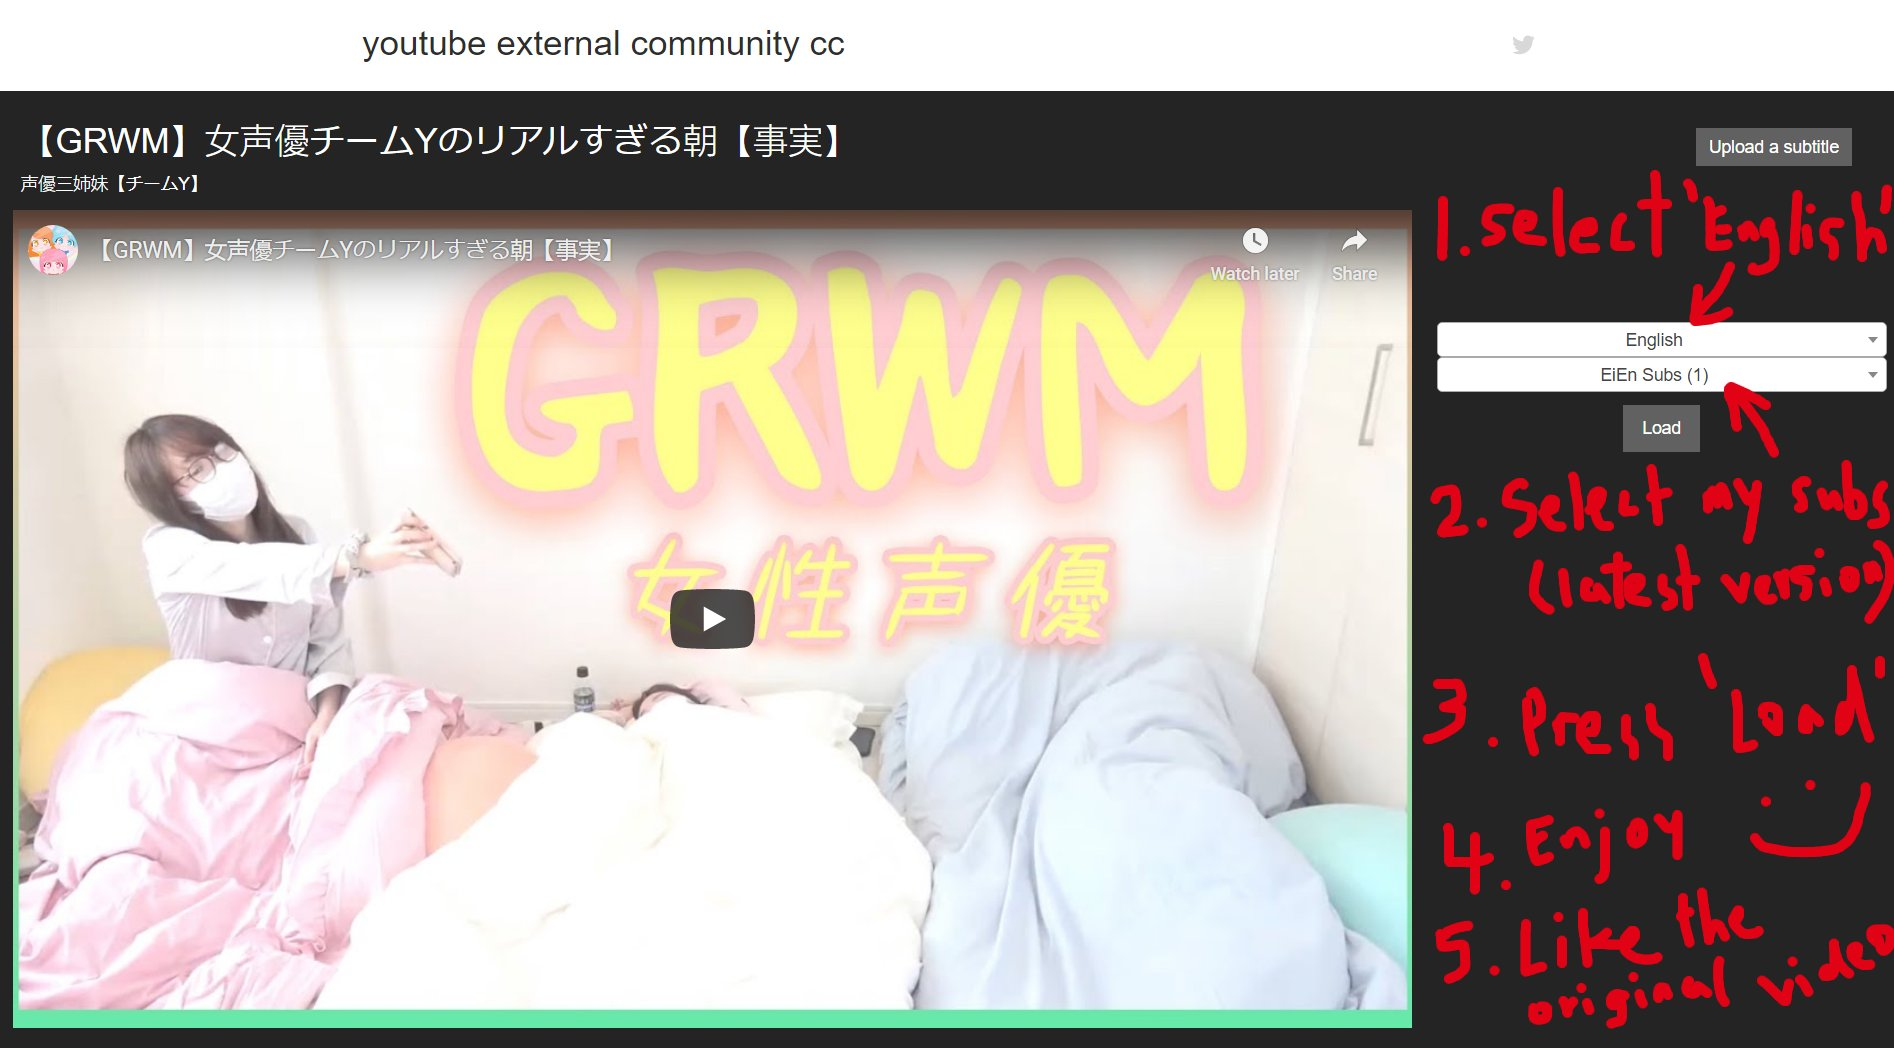 Eng Sub Grwm An All Too Real Morning For Team Y Unscripted Eien Subs As of 2010, men account for 49.2 percent of the u.s. eien subs wordpress com